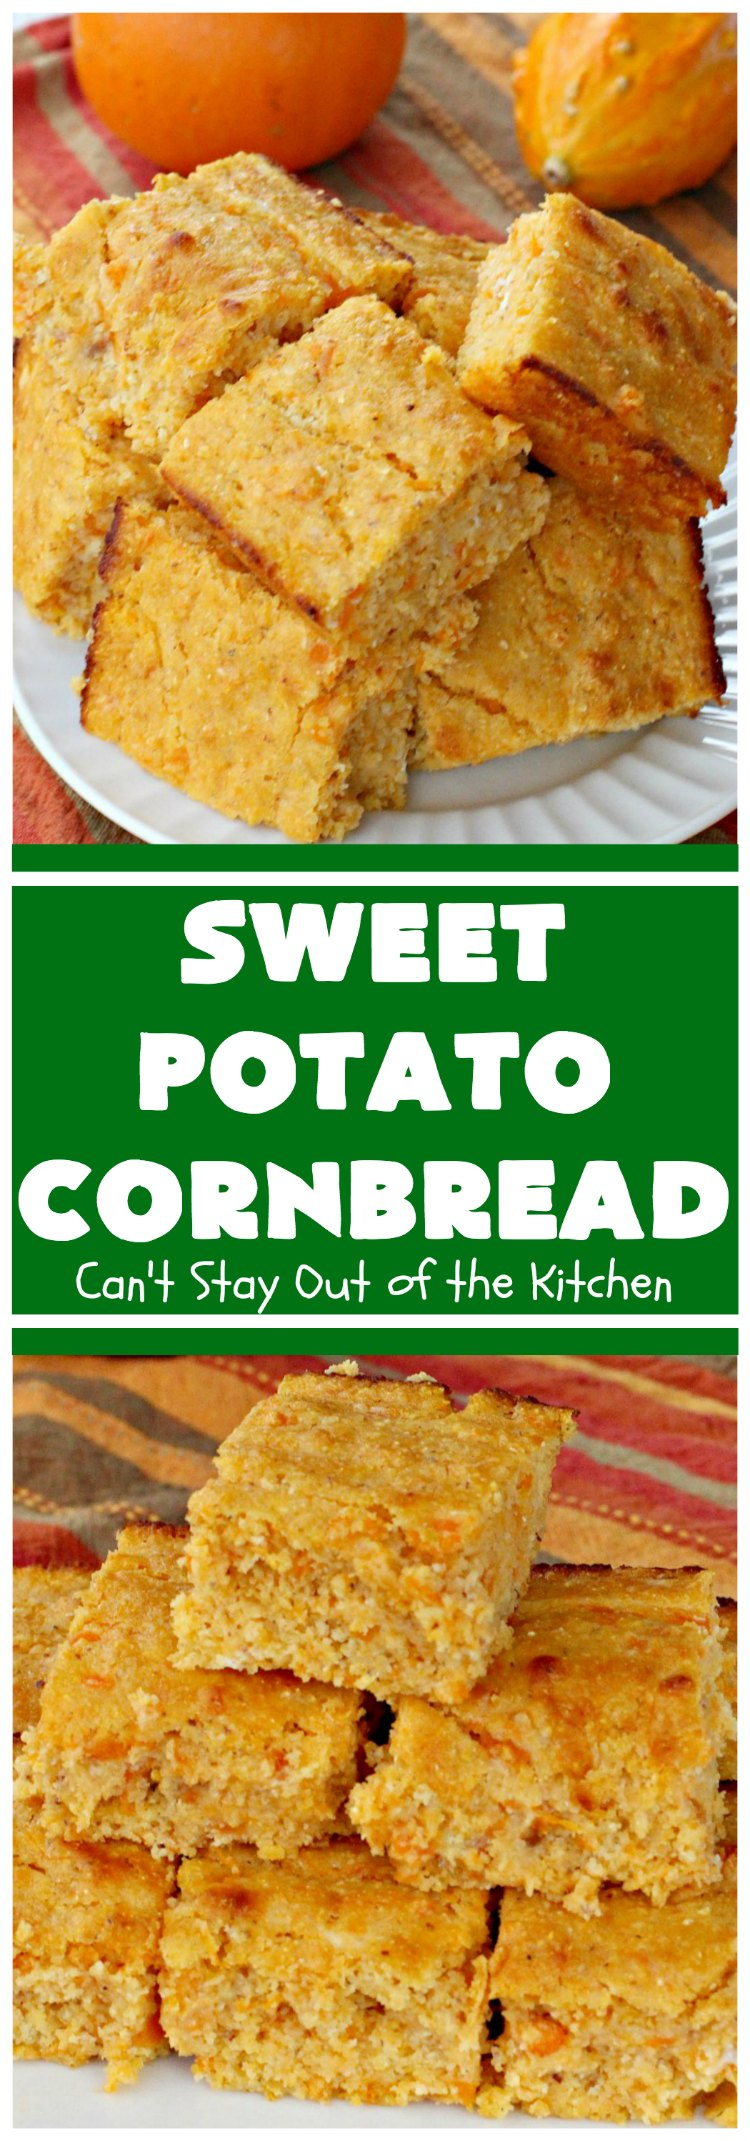 Sweet Potato Cornbread | Can't Stay Out of the Kitchen